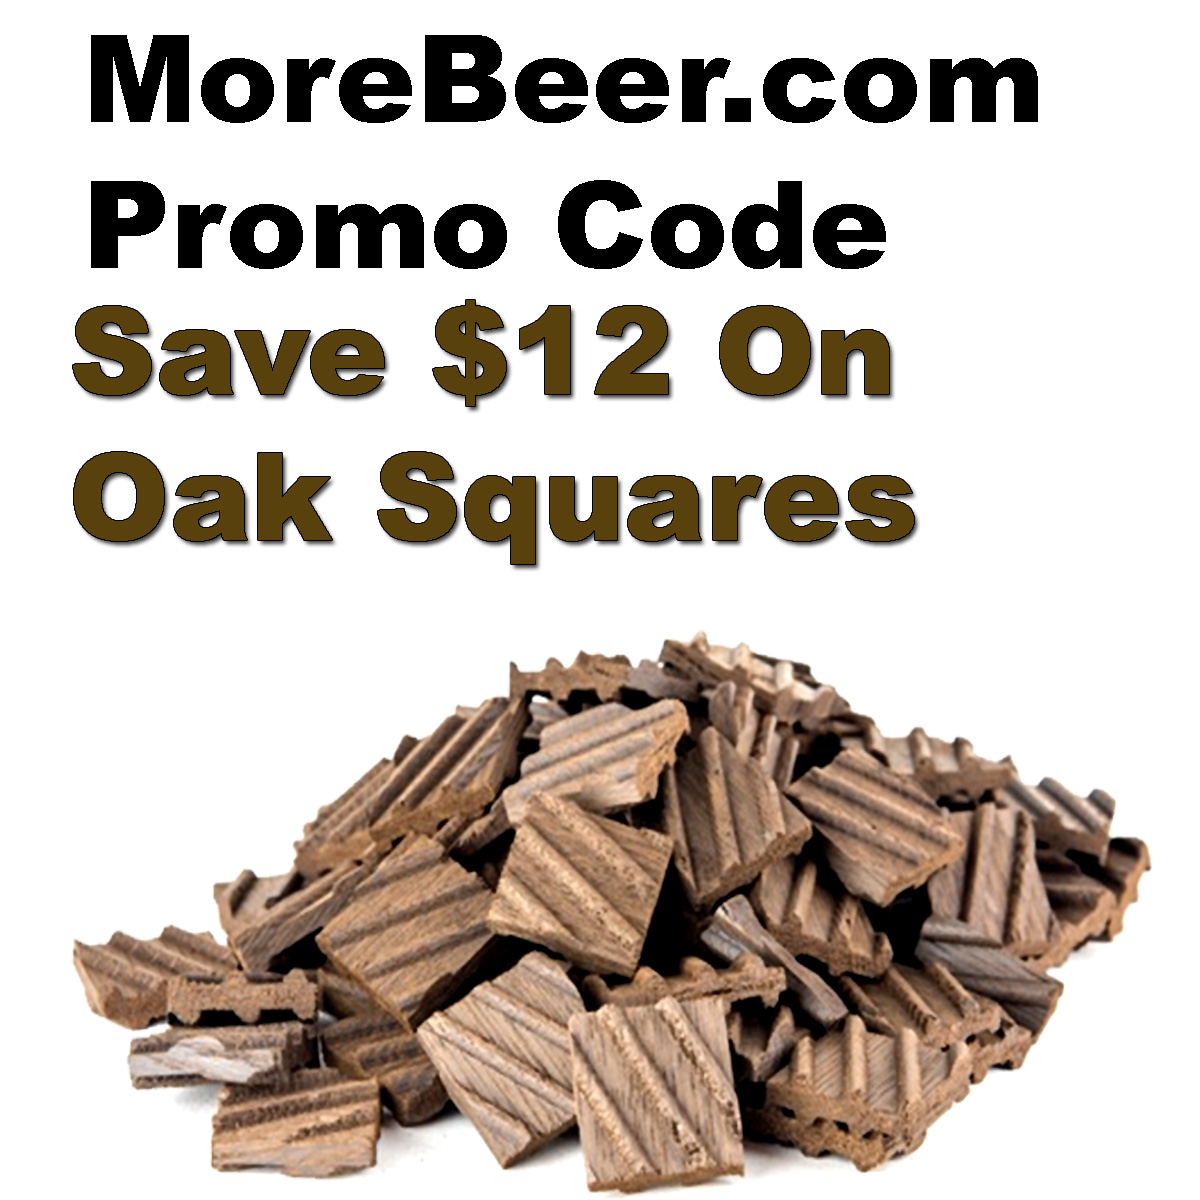 Home Wine Making Coupon Codes for Save $12 On BeerStix Oak Squares With the MoreBeer.com promo code of the day. Coupon Code